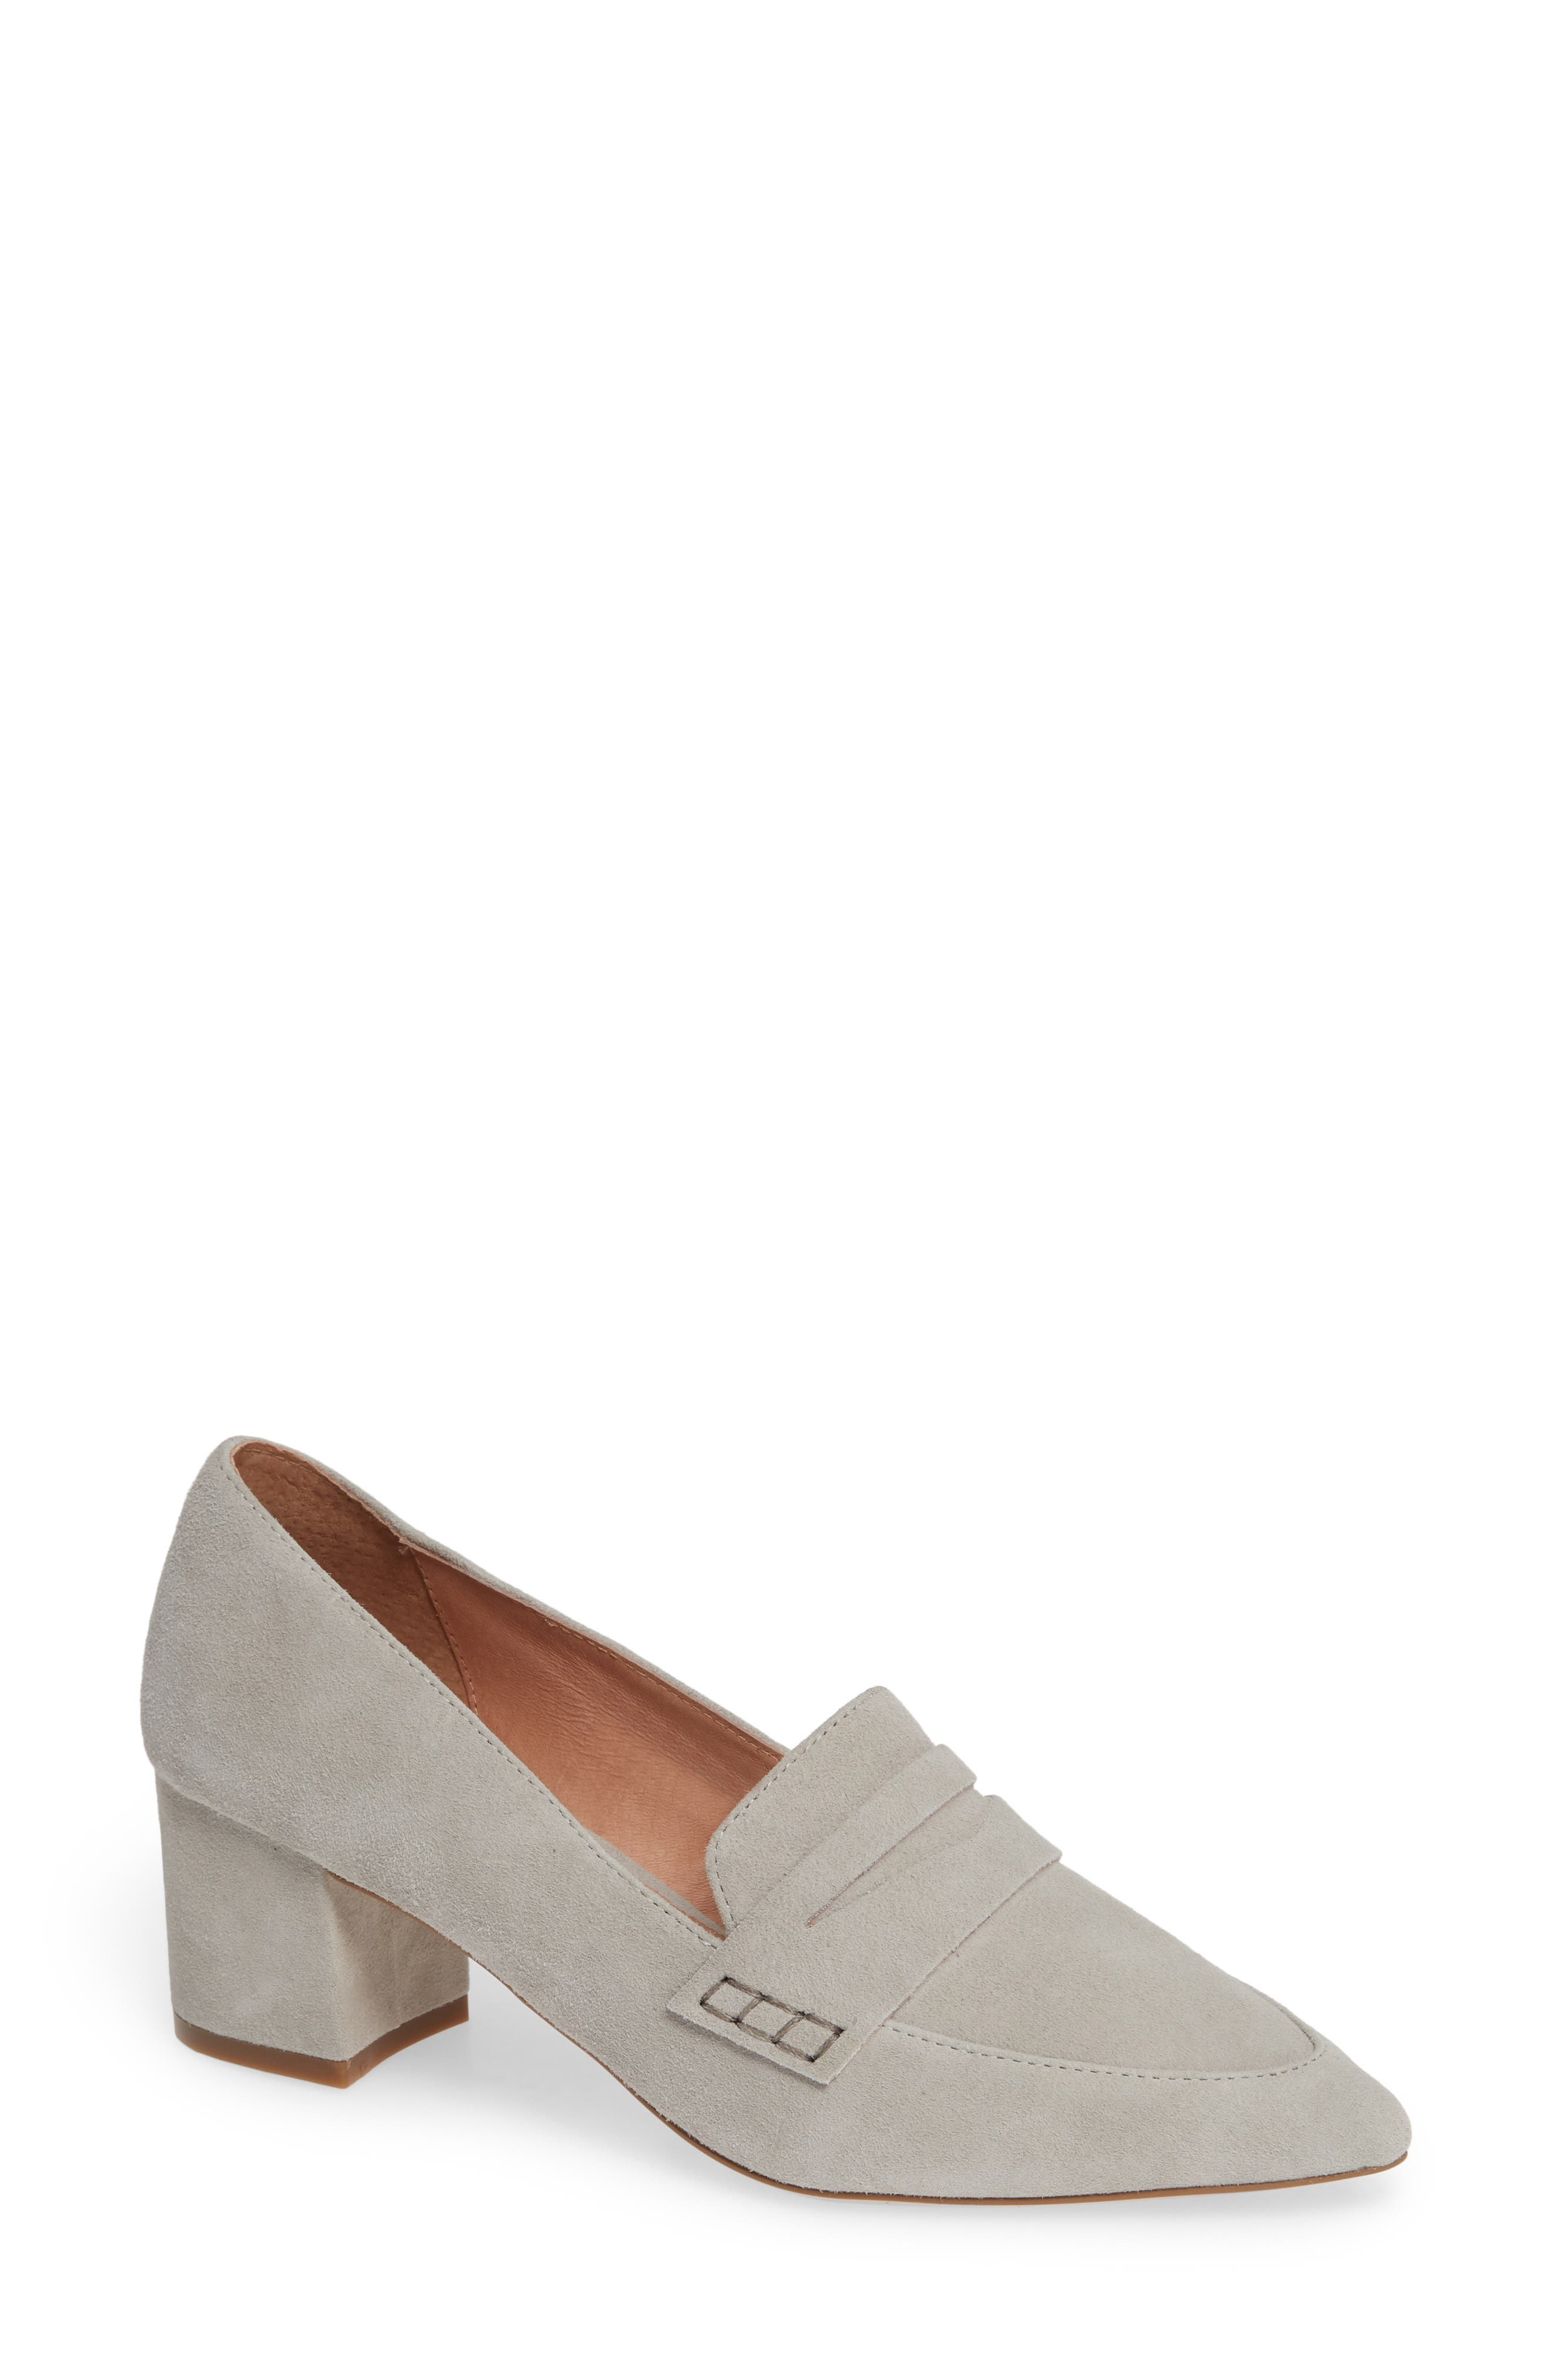 Isabelle Pointy Toe Pump,                             Main thumbnail 1, color,                             LIGHT GREY SUEDE